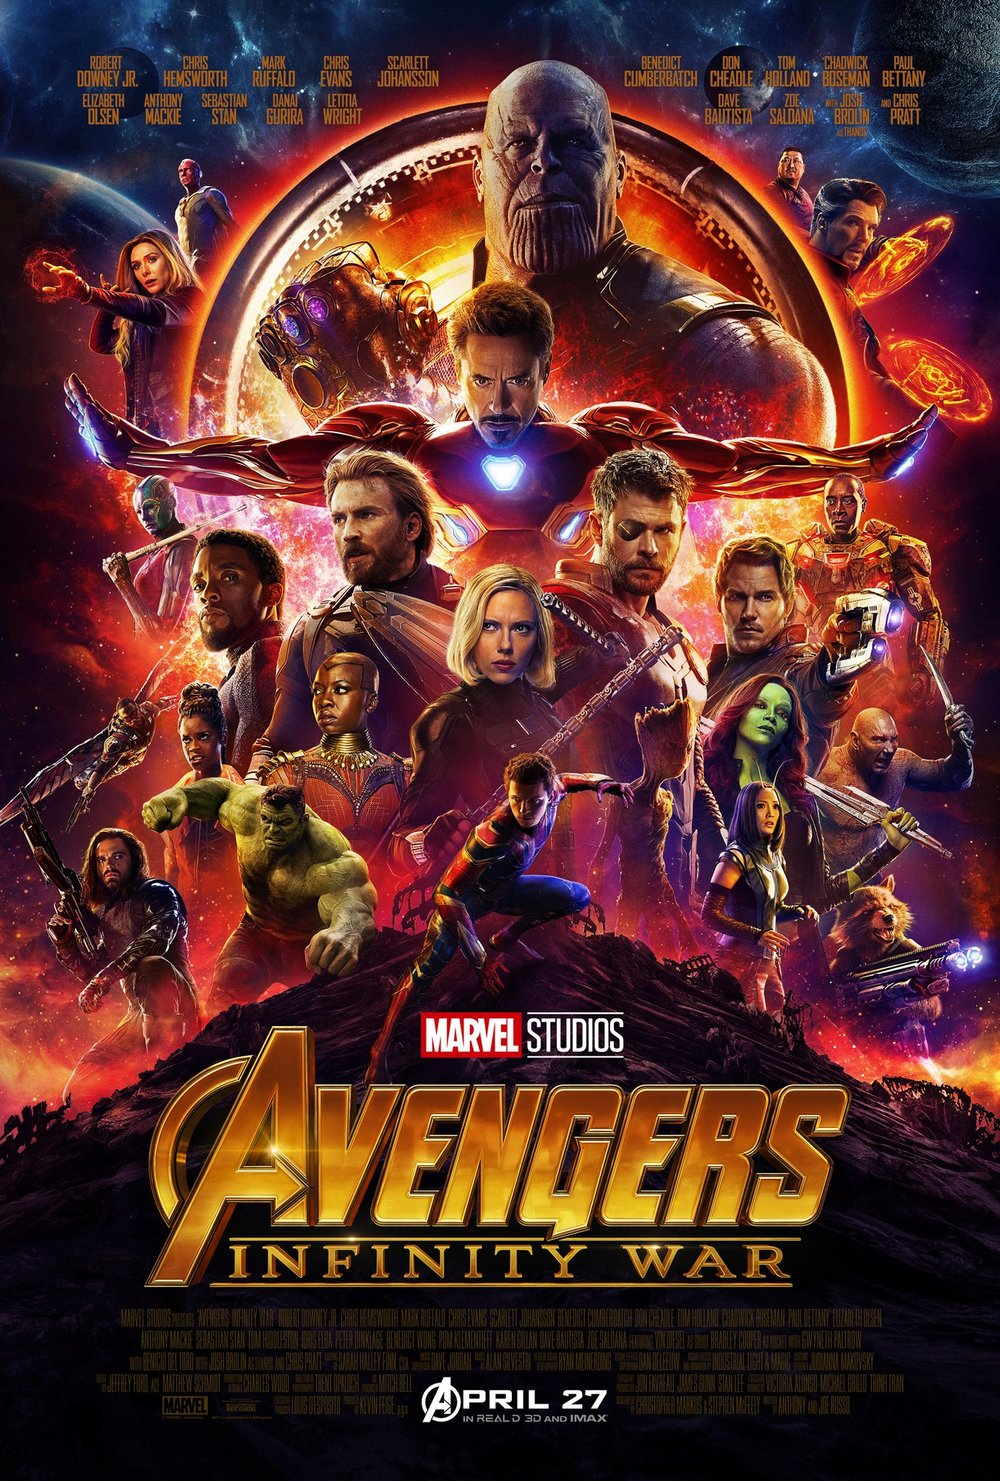 epic-poster-released-for-avengers-infinity-war-packs-in-a-ton-of-characters1